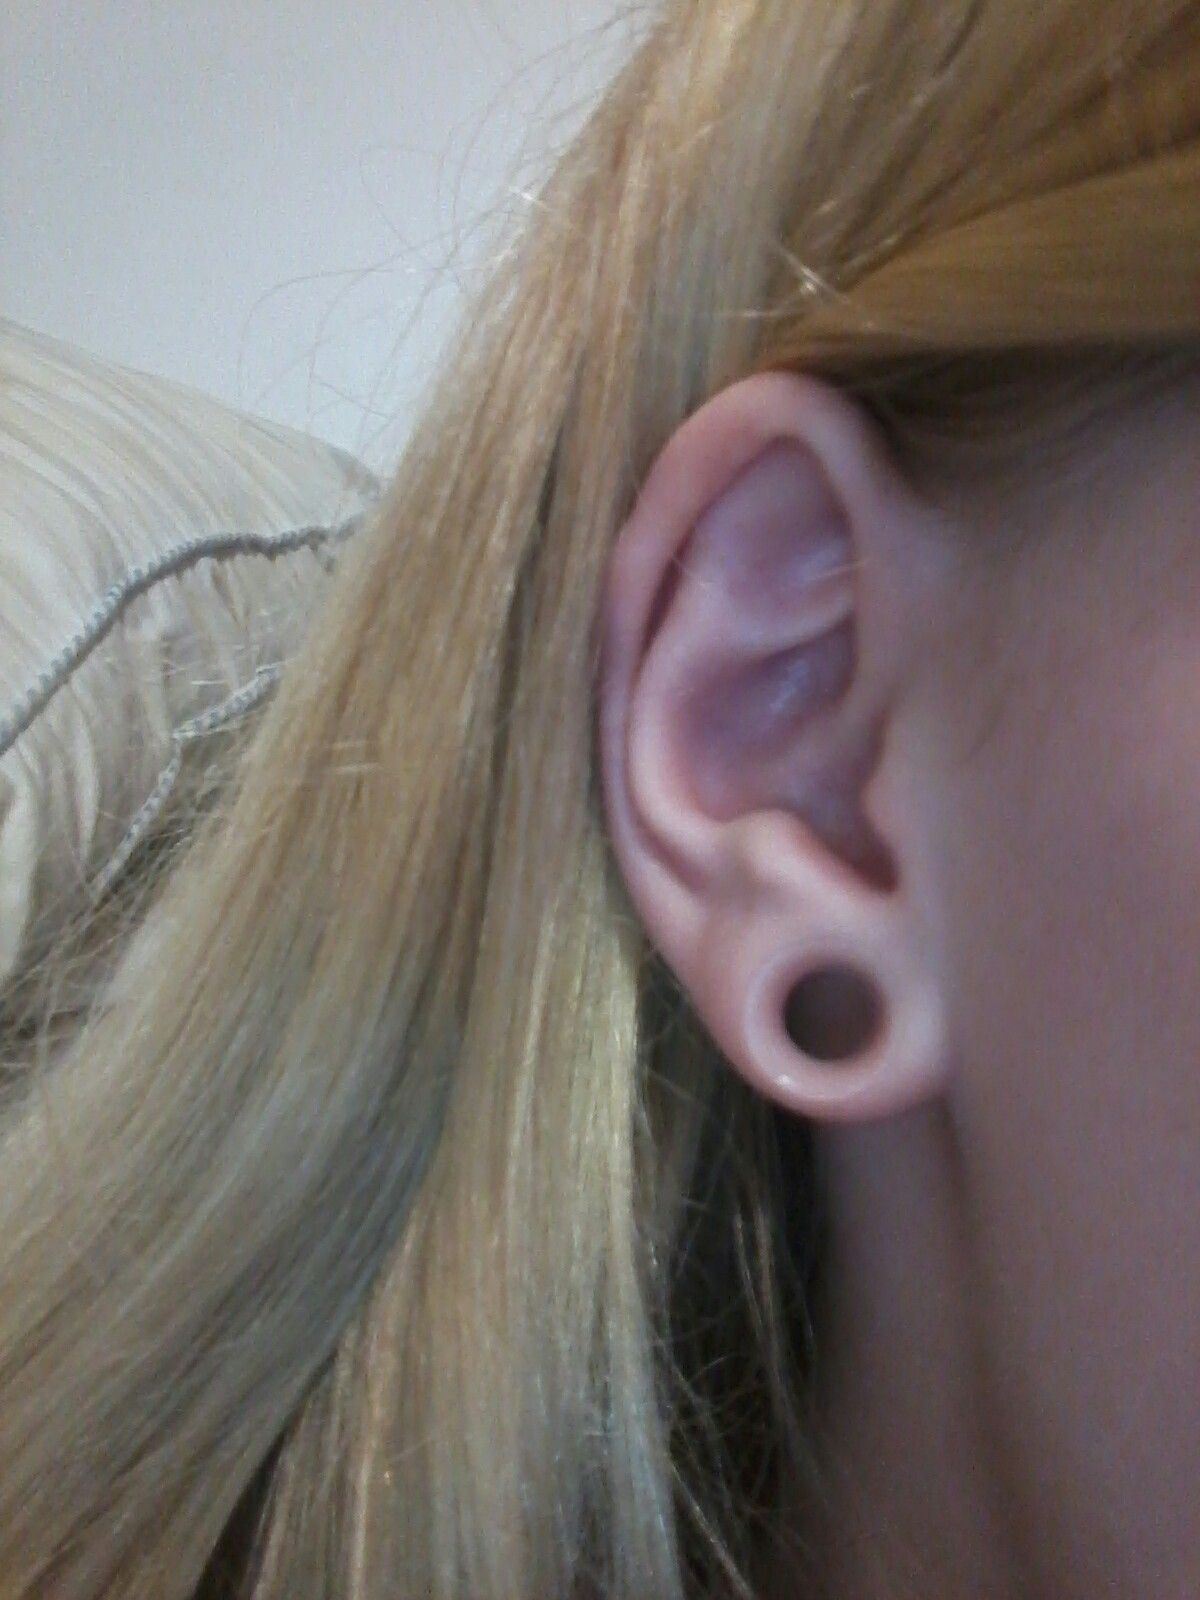 Clear Tunnels 0g Piercing Ideas Cool Piercings Ear Stretching Rings